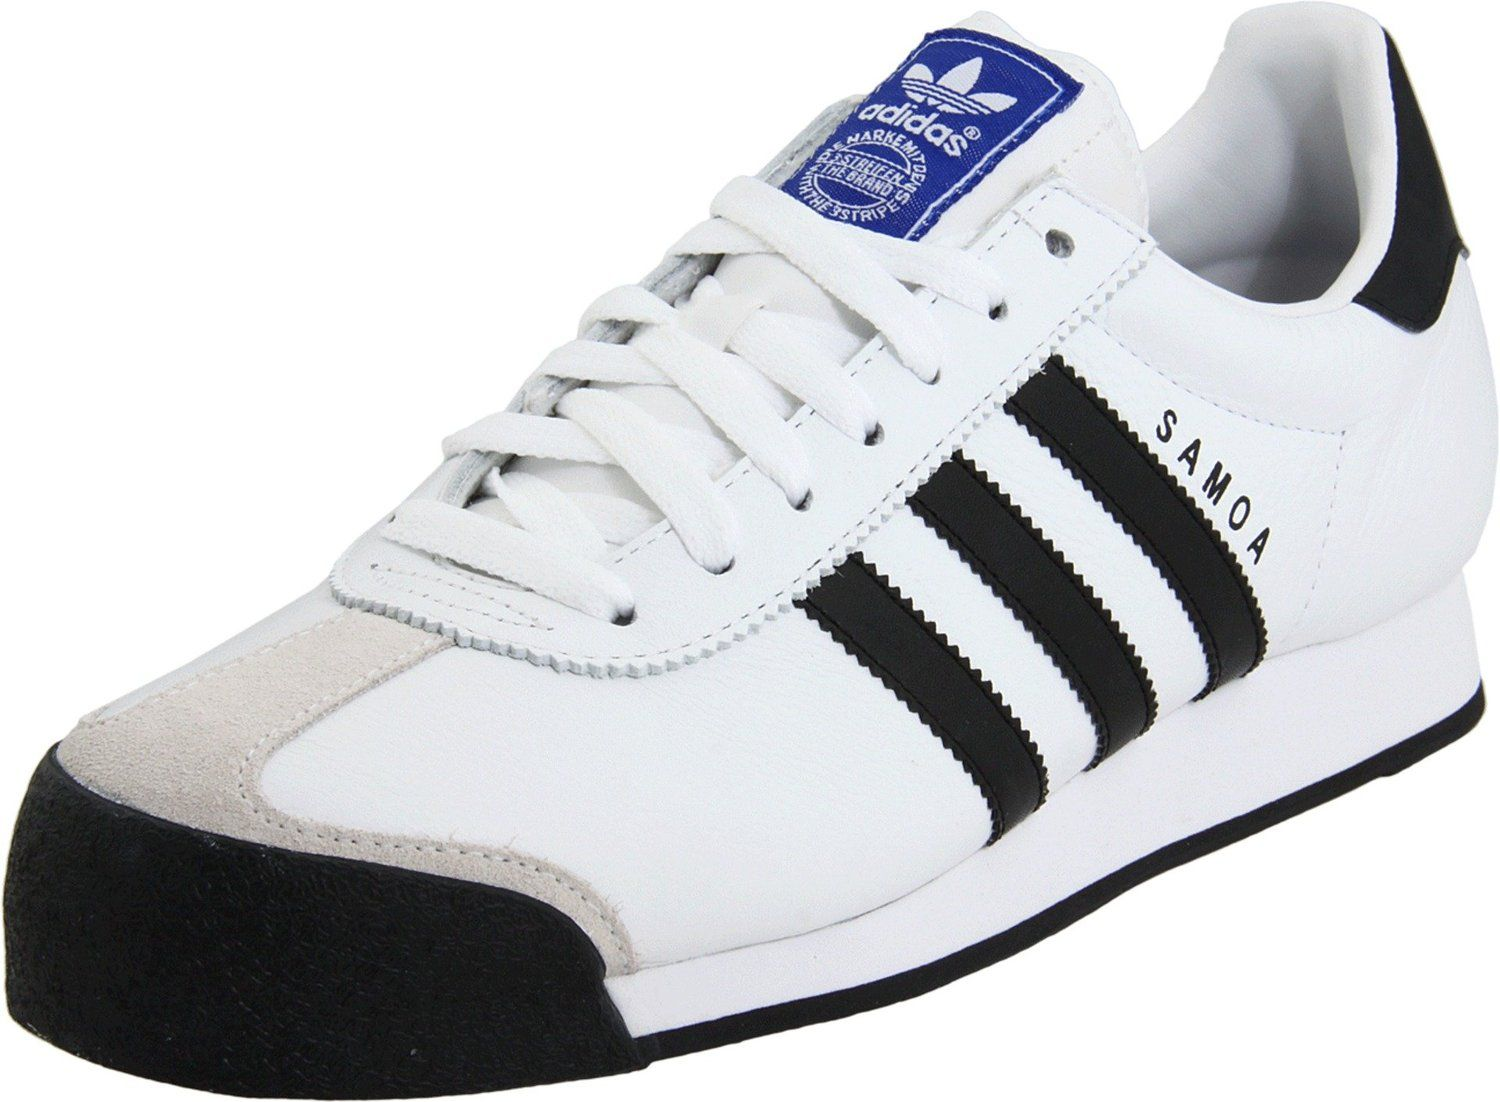 Amazon.com: adidas Originals Men's Samoa Sneaker: Shoes